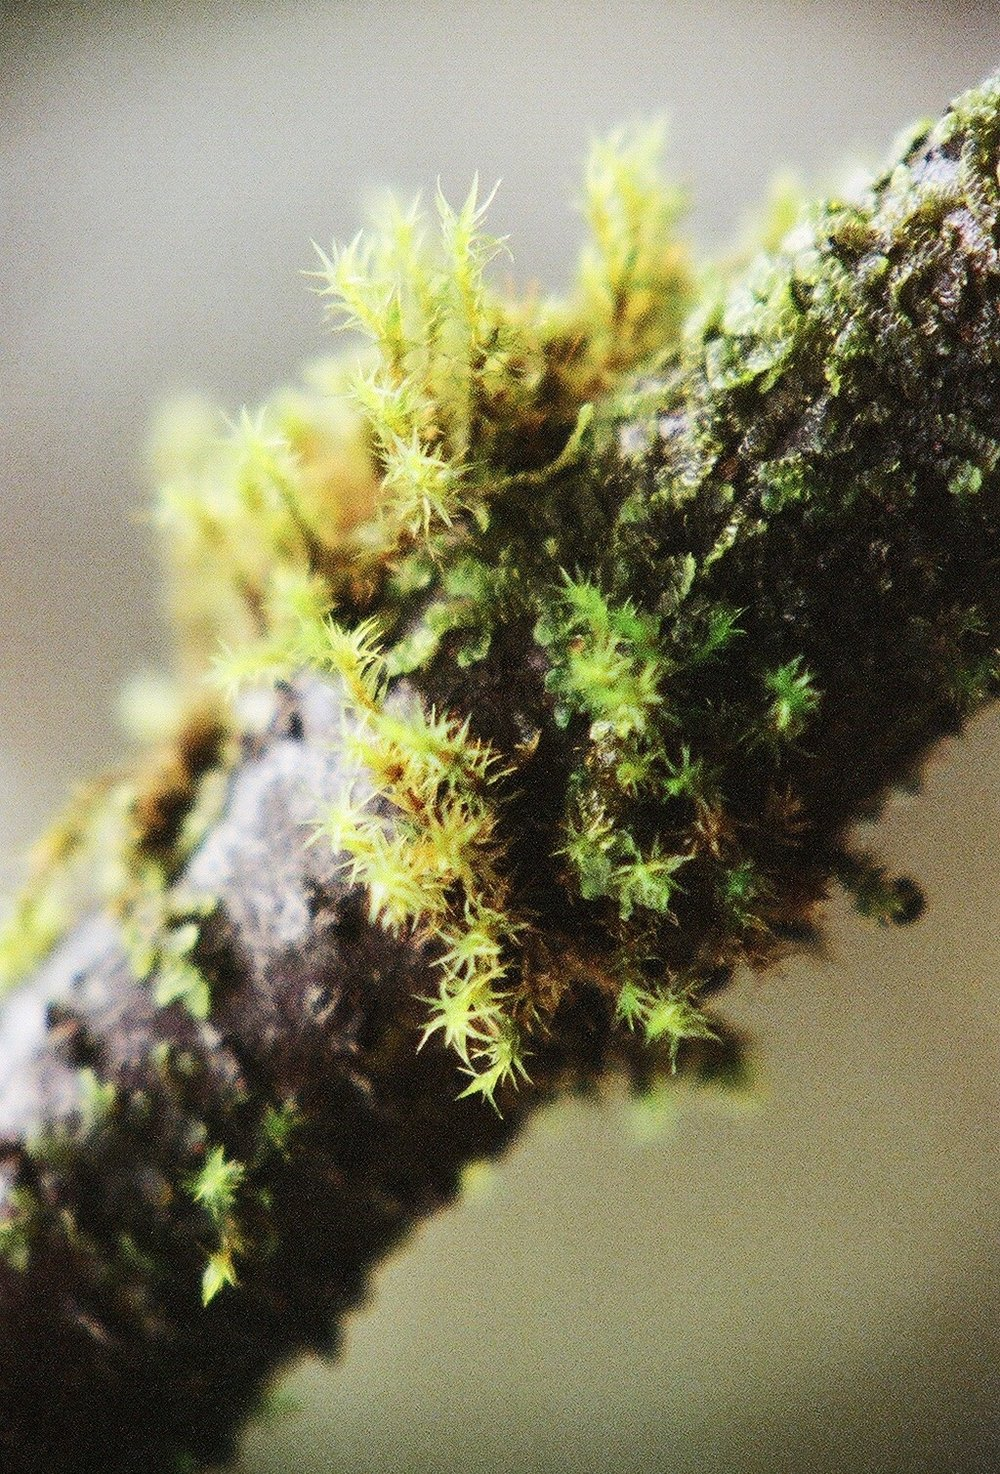 Moss on Tree 2   15.11 Fuji Pro 800